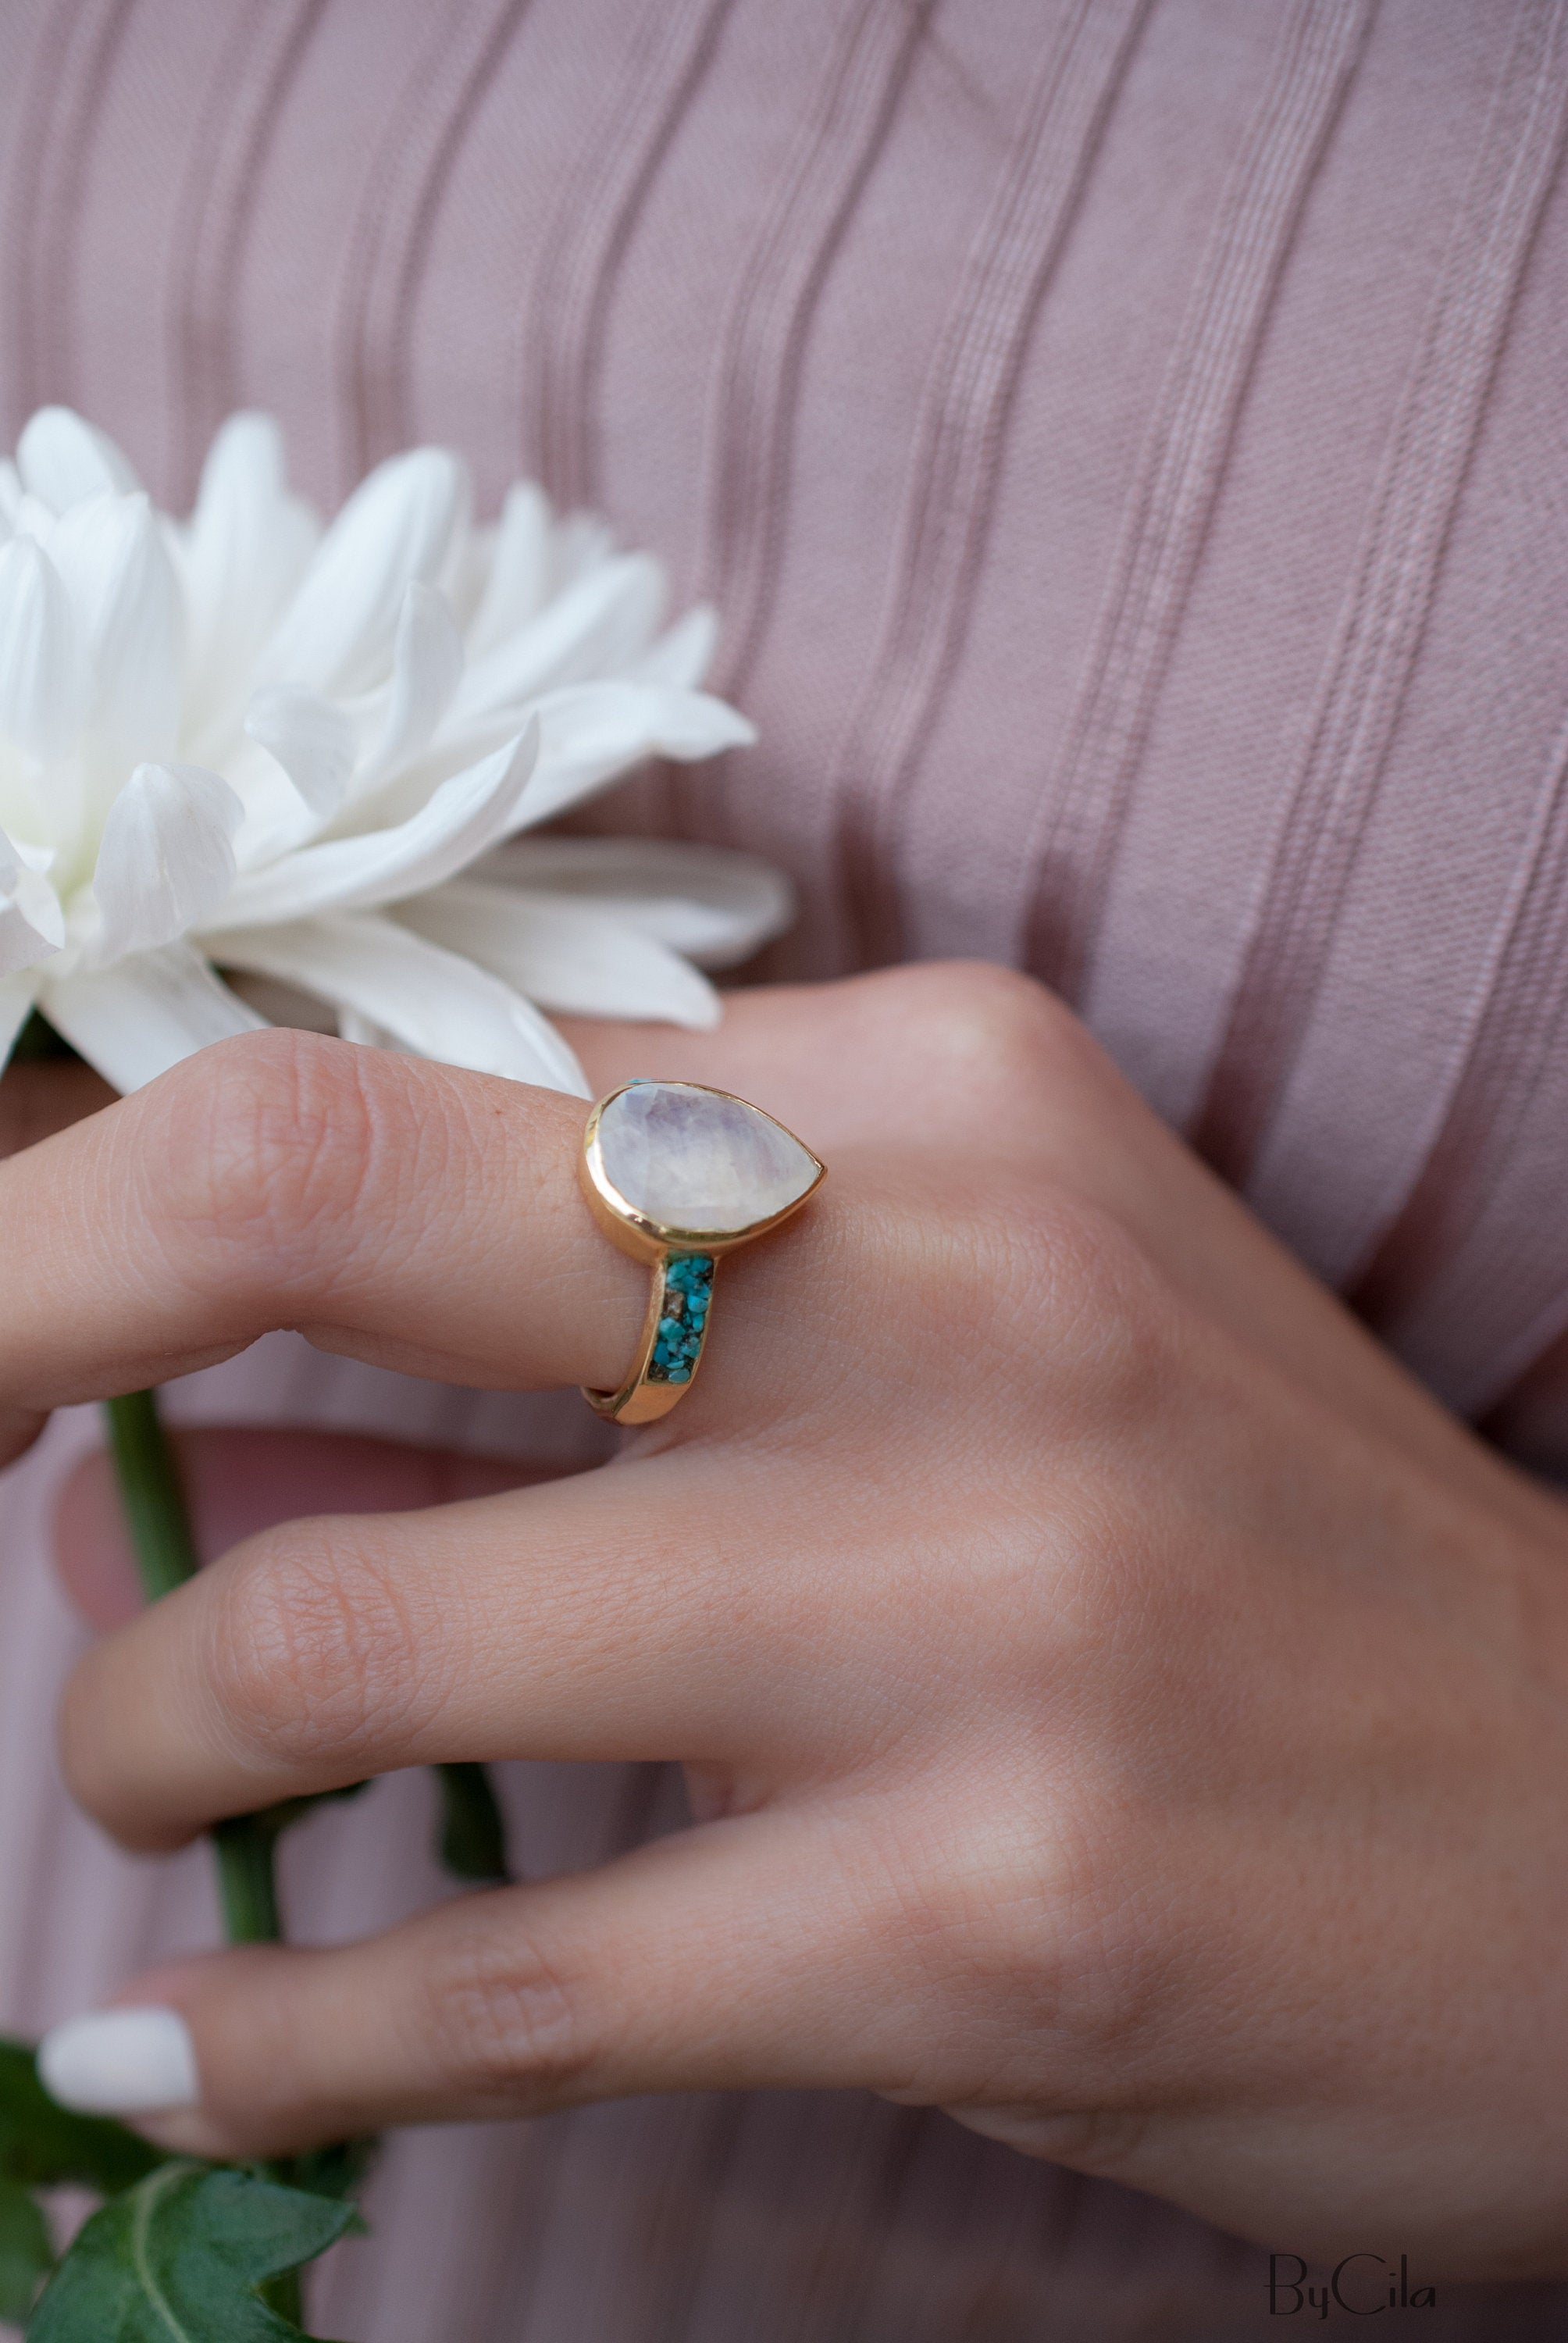 Anniversary Ring Propose Ring Boho Ring Gift For Her SS9-4861 Brass Ring Designs Ring Brass Ring Plain Band